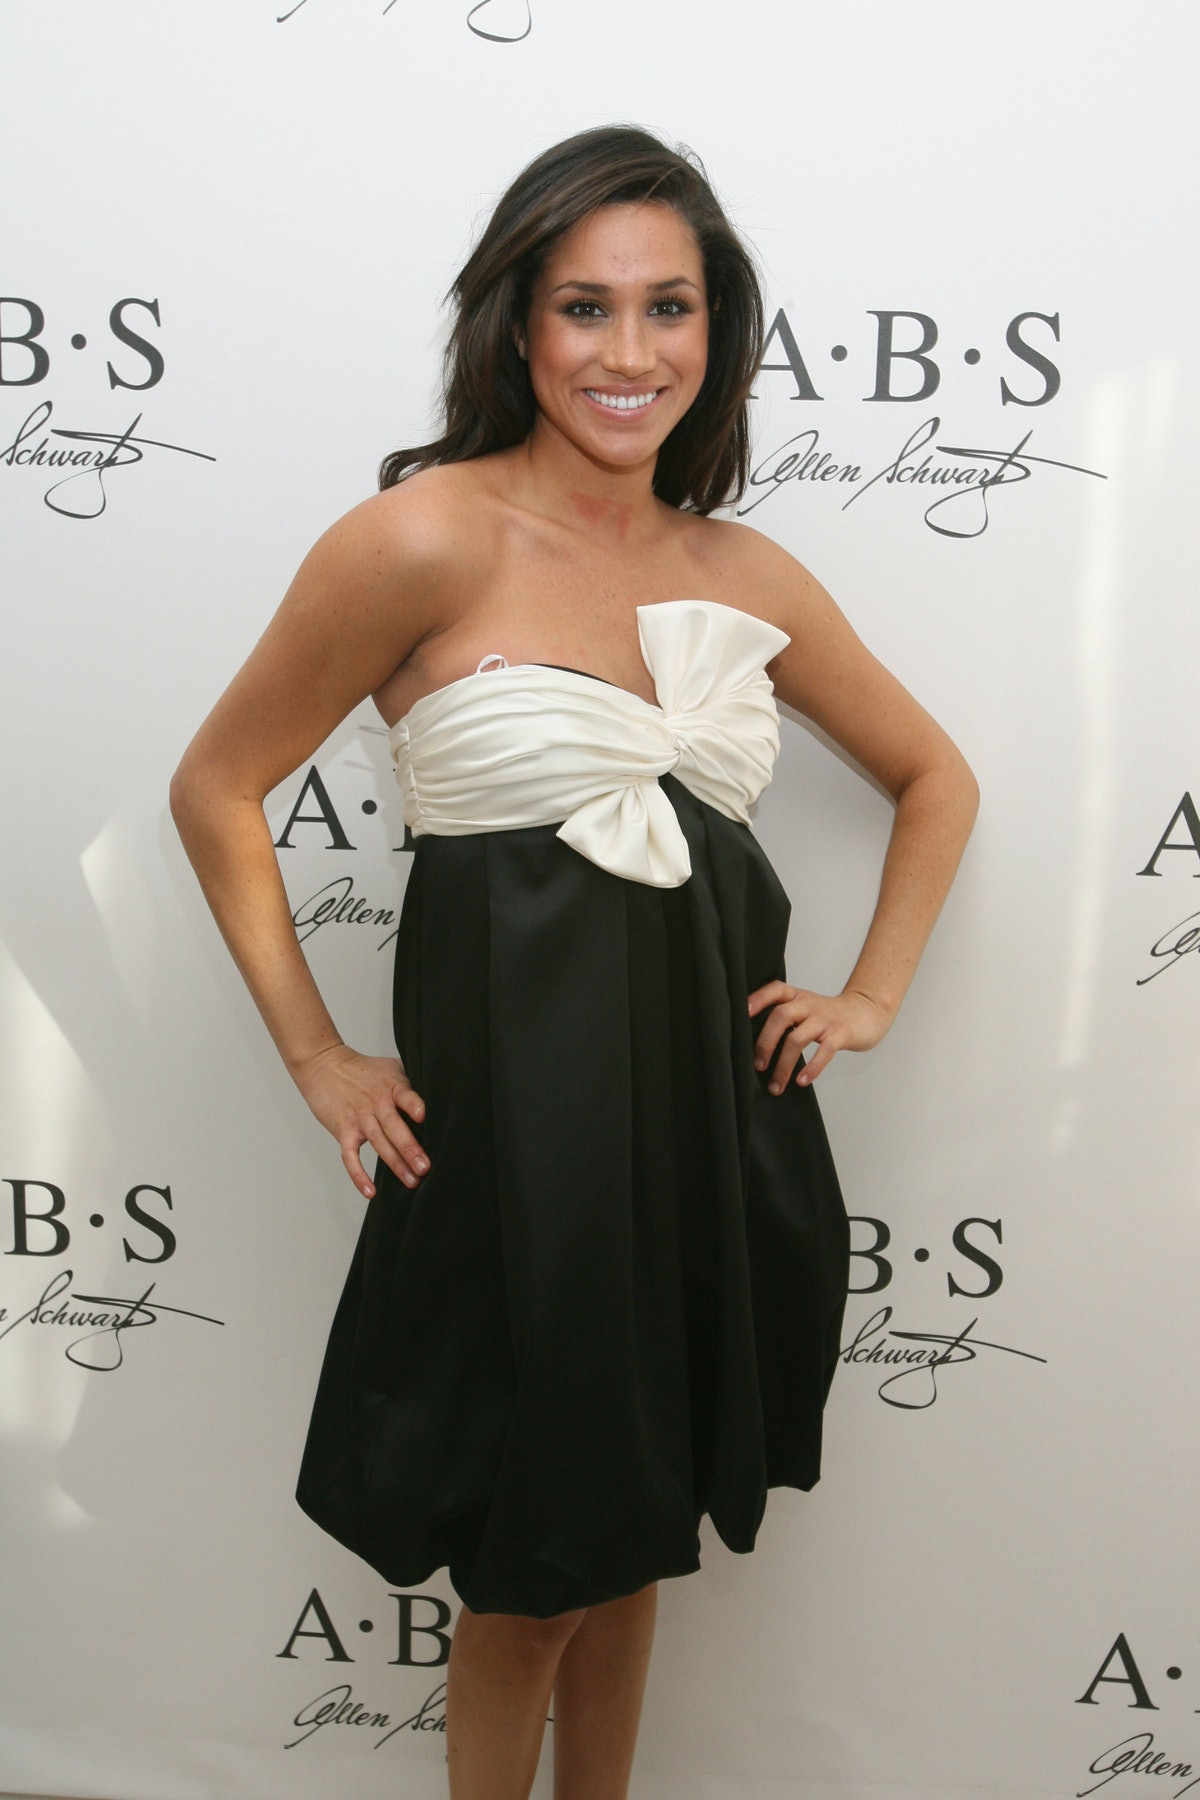 Markle, pictured here smiling at a premiere in a black and white tube top dress with a bow on it, wa...